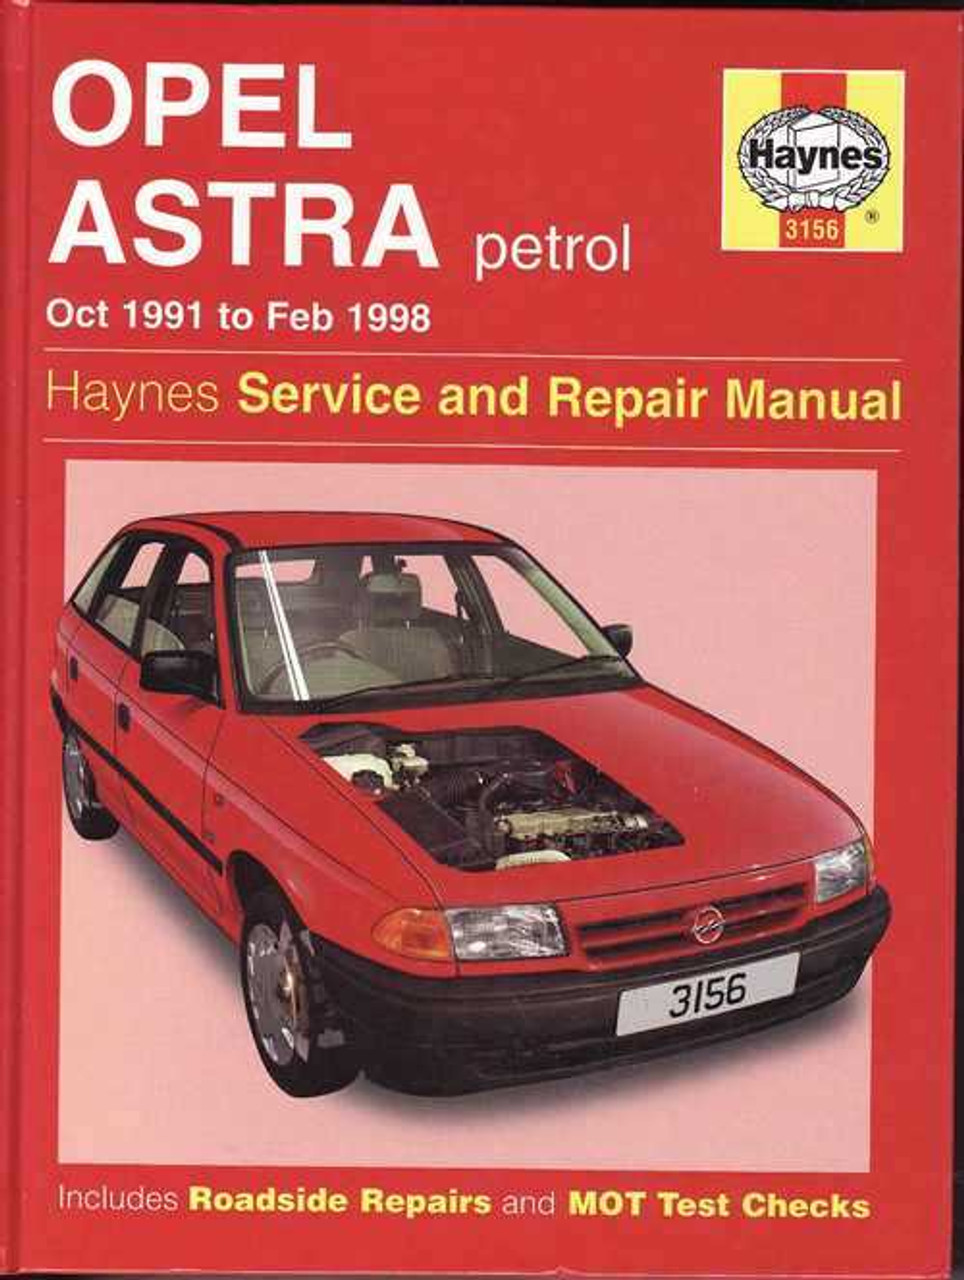 hight resolution of opel astra 1995 wiring diagram schematic diagramholden astra opel petrol 1991 1998 workshop manual